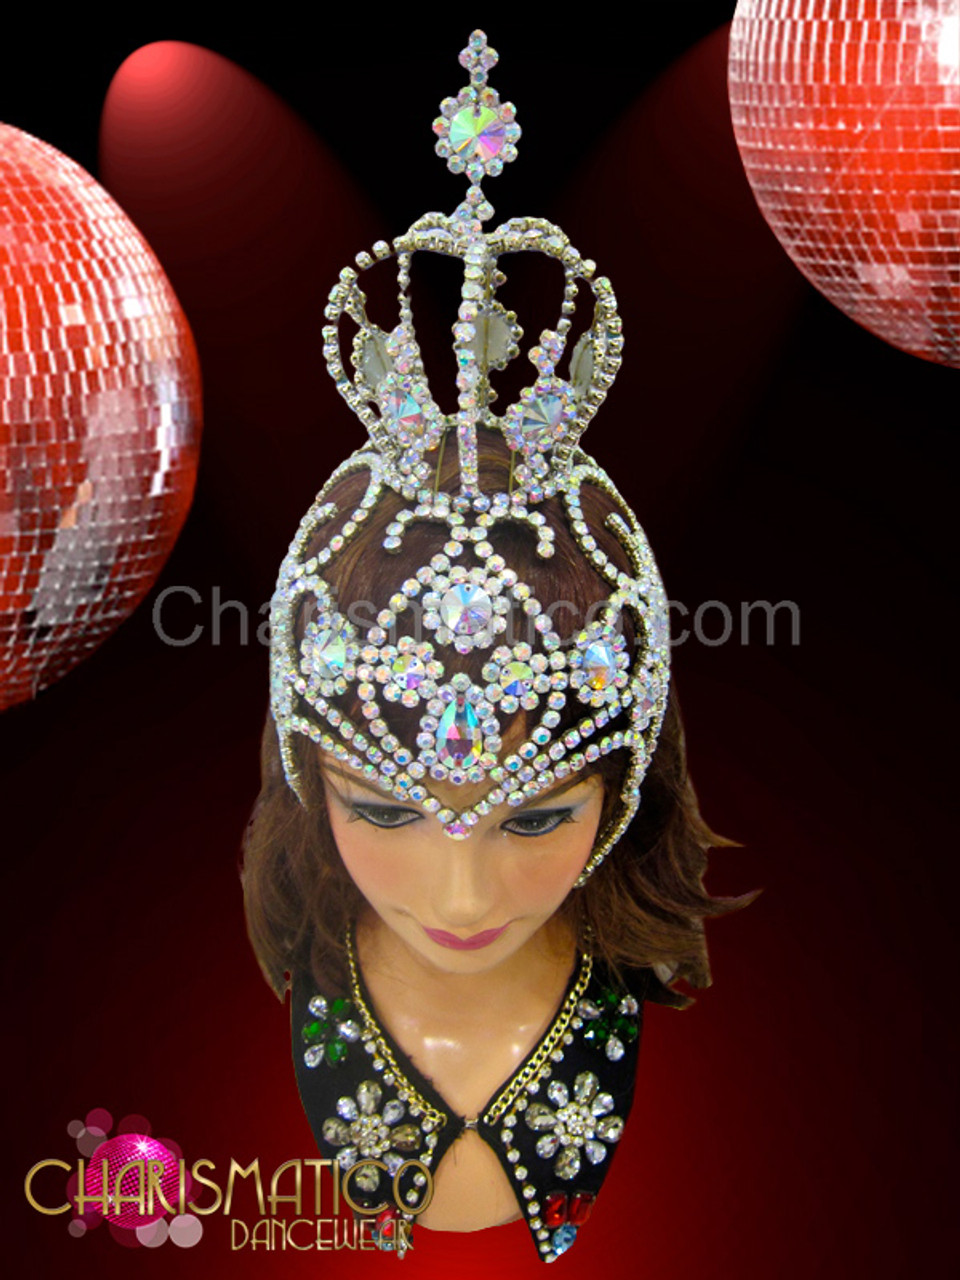 Rhinestone and Iridescent Crystal accented Red Diva Showgirl/'s Ostrich Headdress